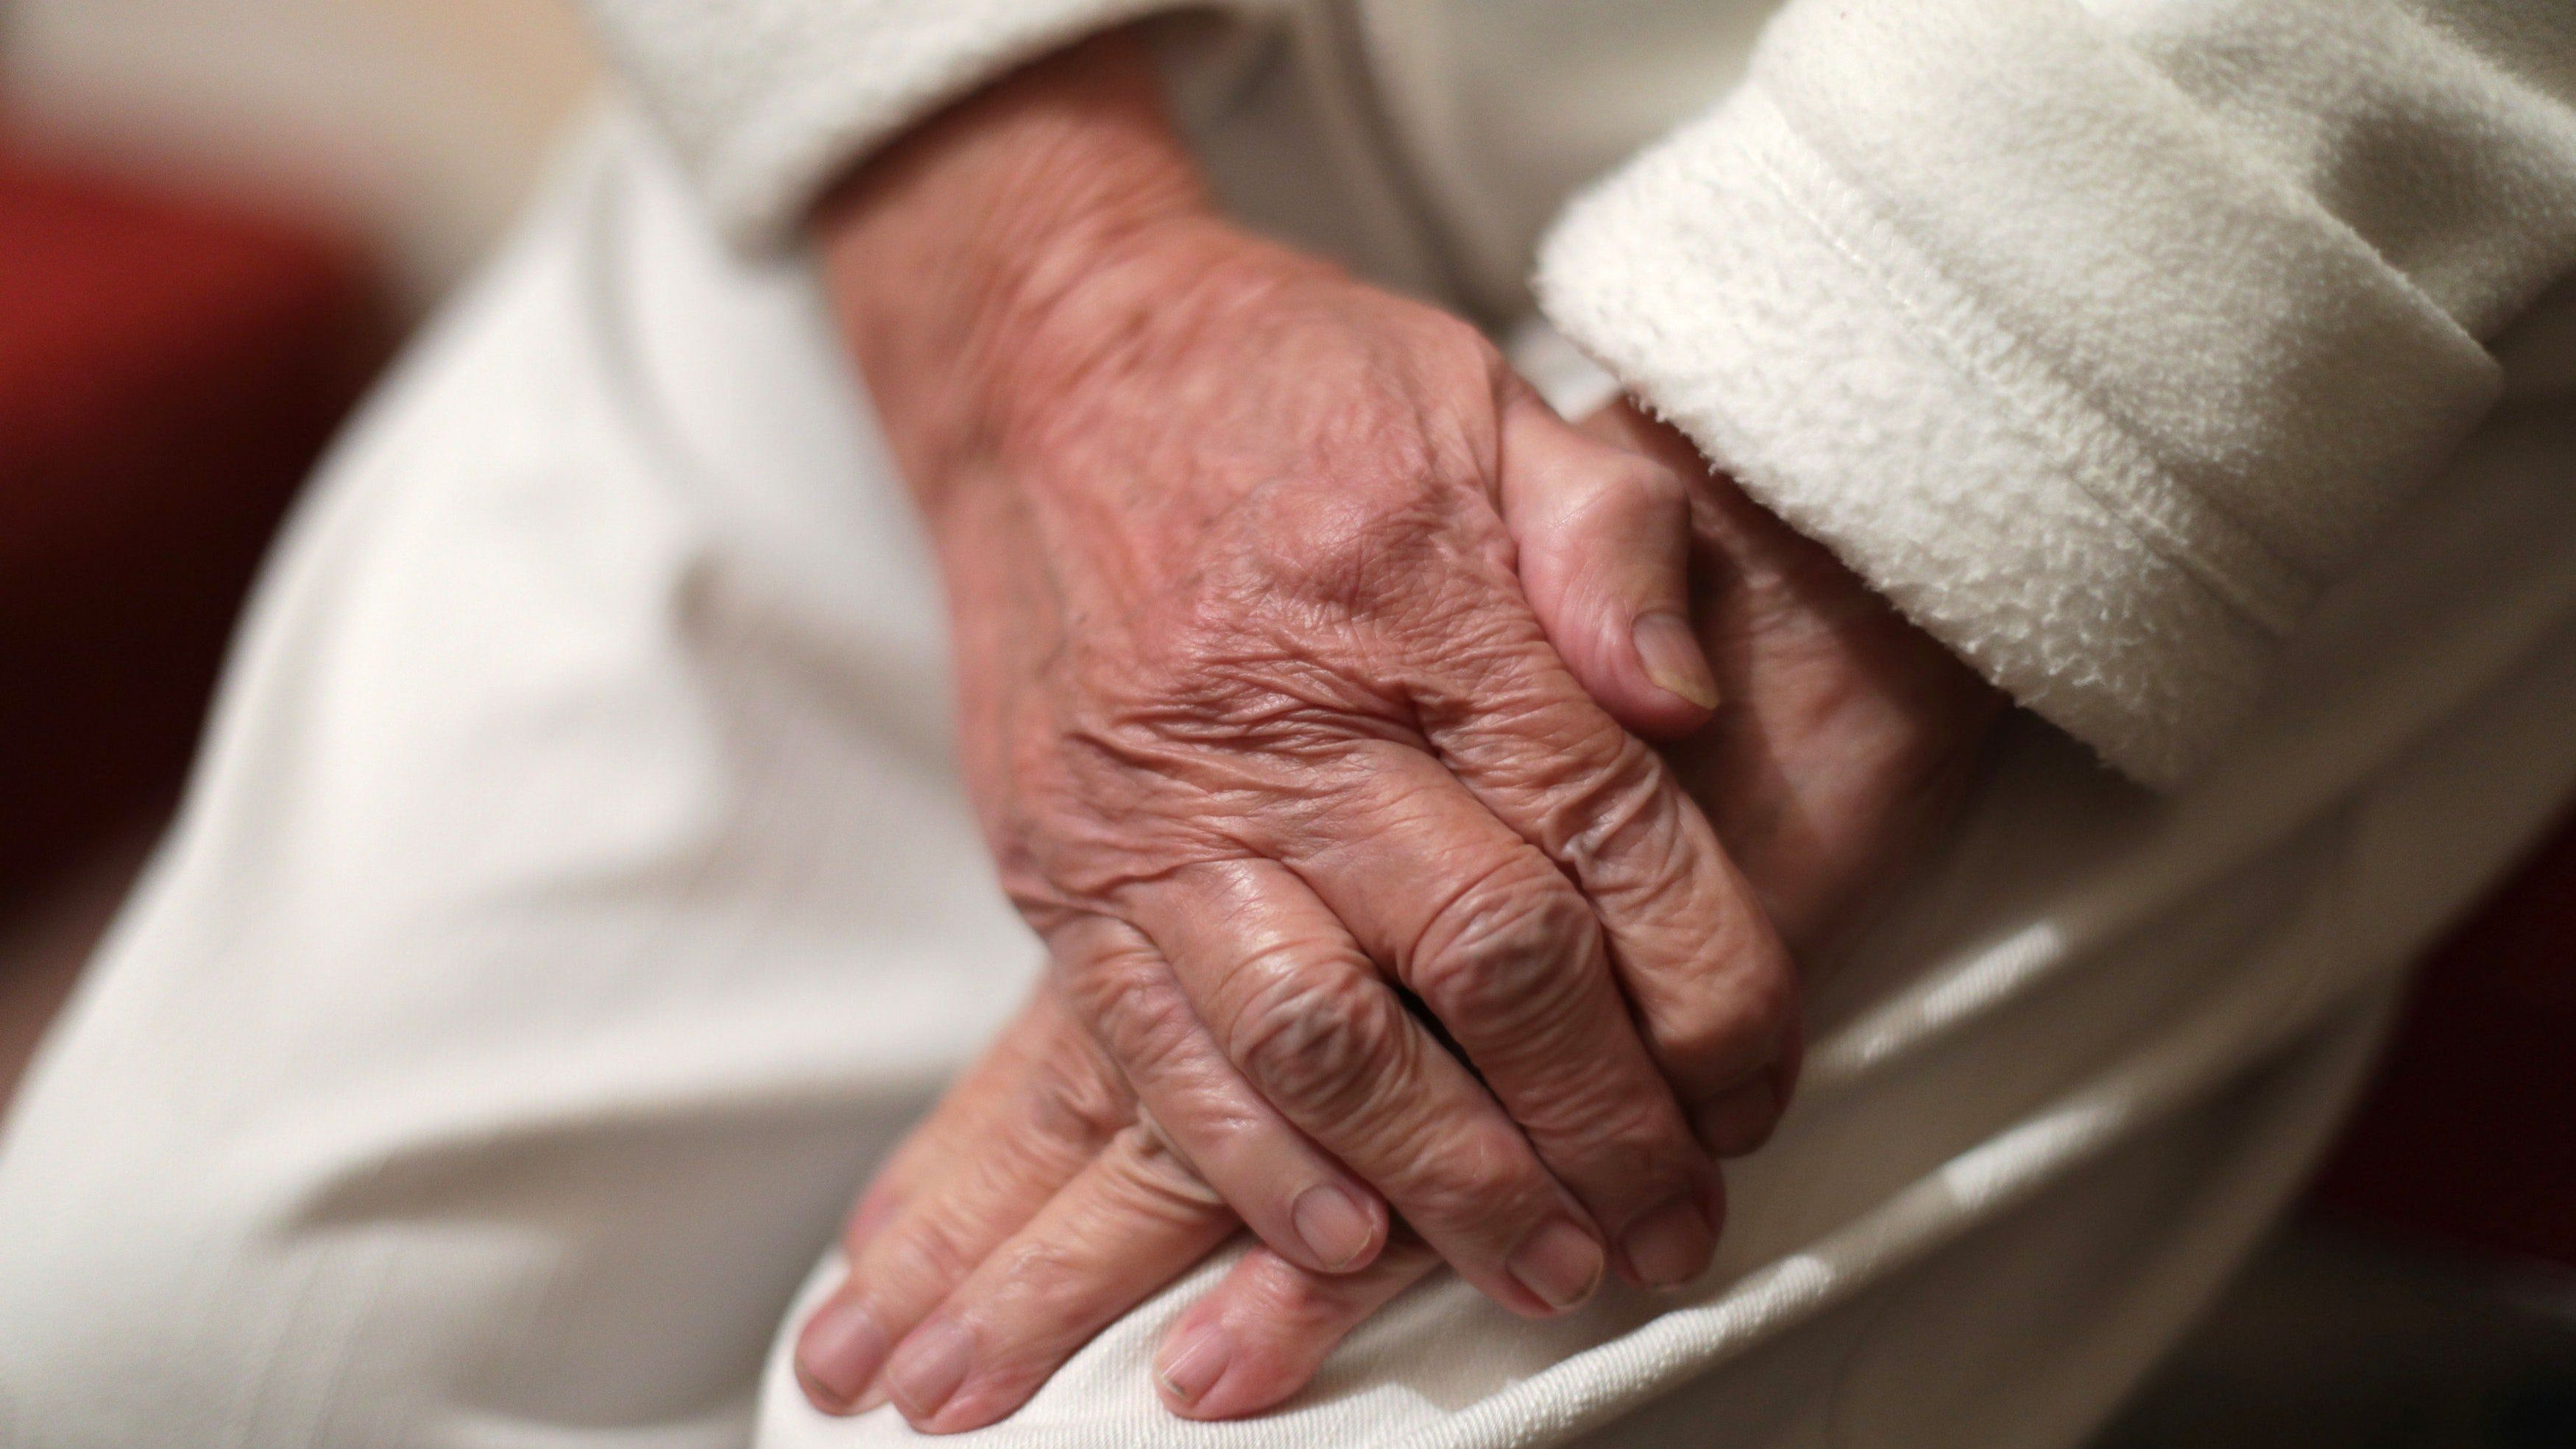 Government Launches Campaign To Fill 110,000 Social Care